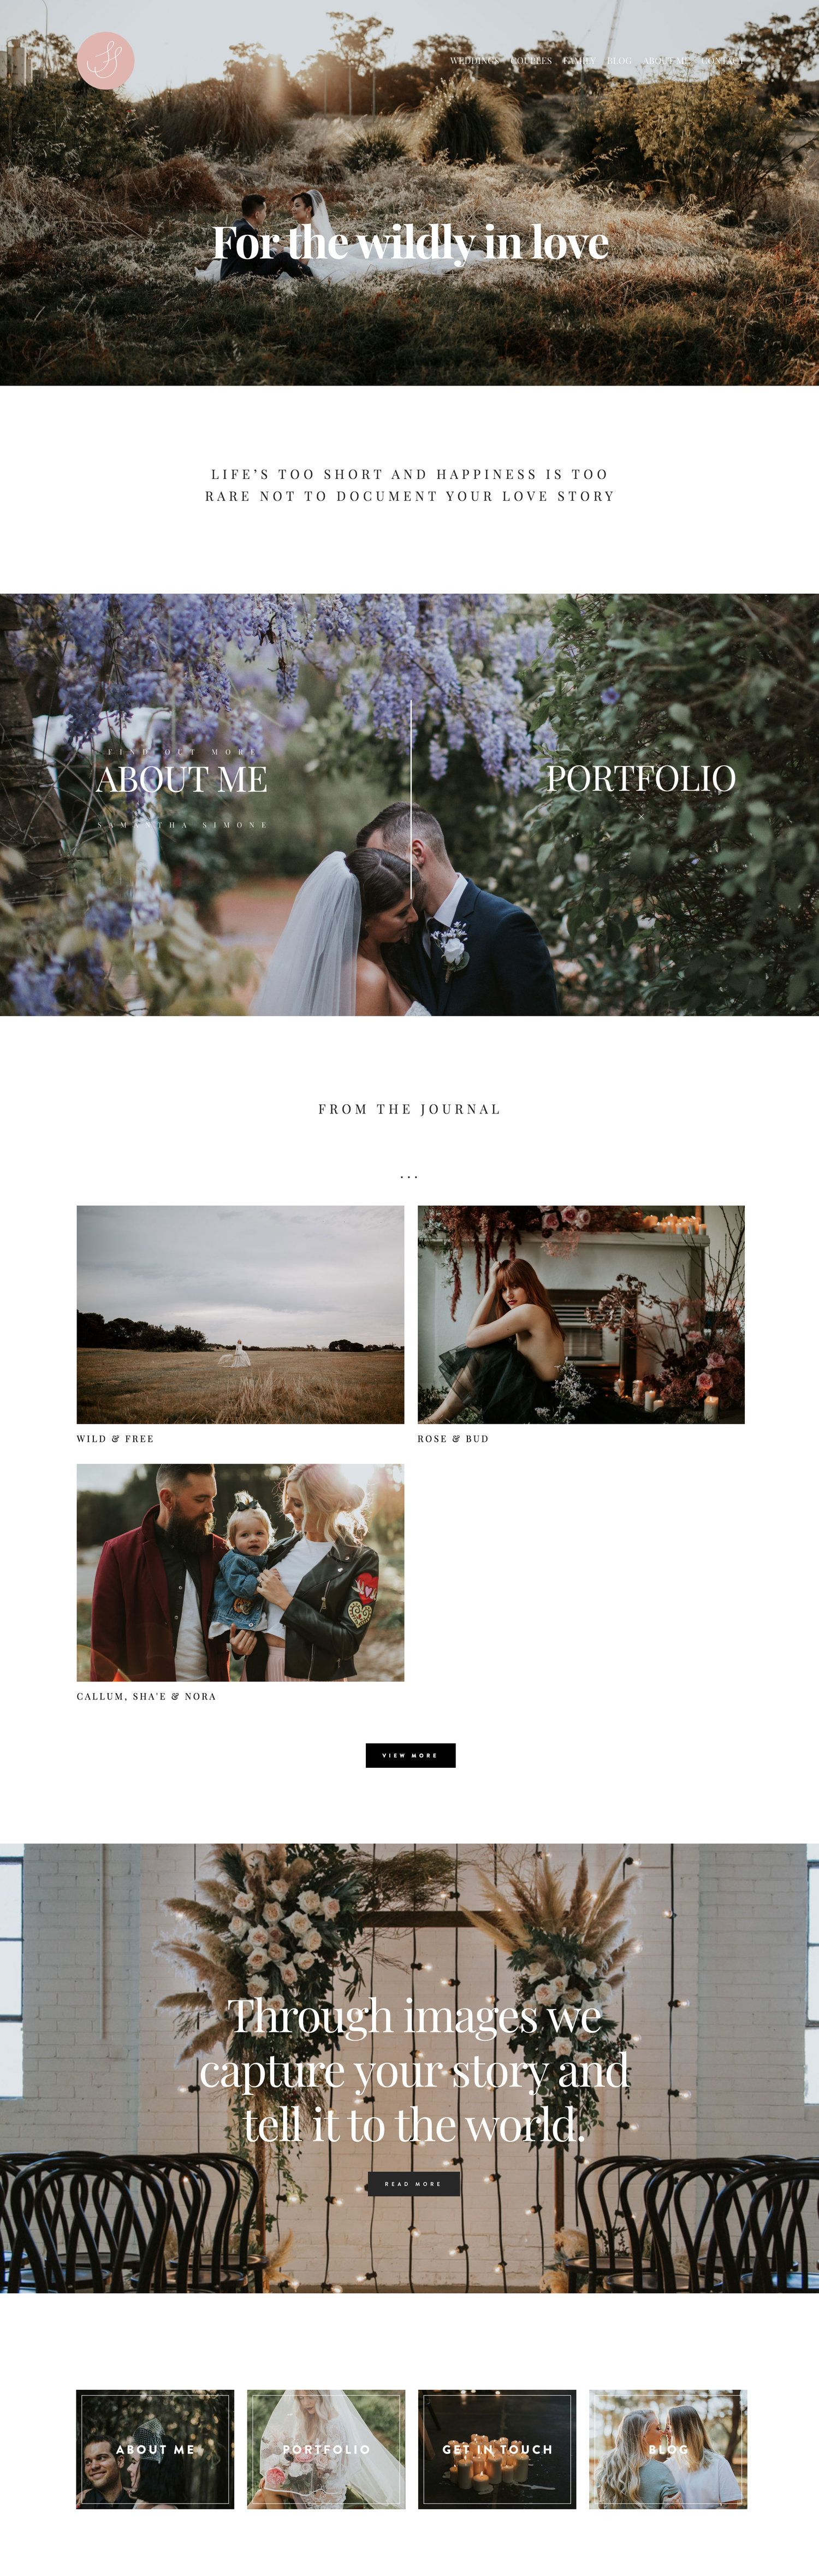 5 Great Photography Websites from Australia | Squaremuse